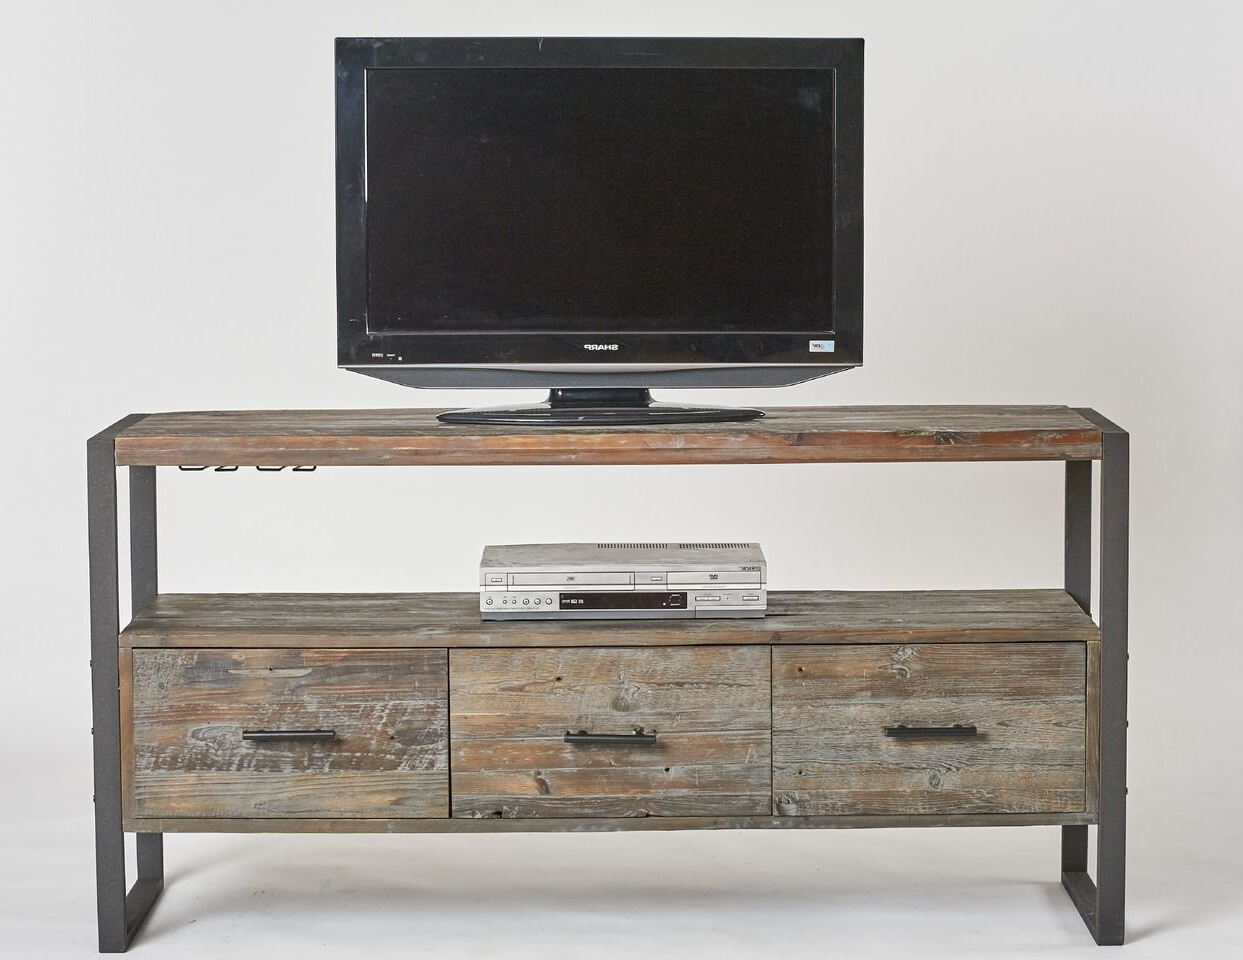 Rustic Antique Tv Stand | Wayfair In Century Sky 60 Inch Tv Stands (View 17 of 20)